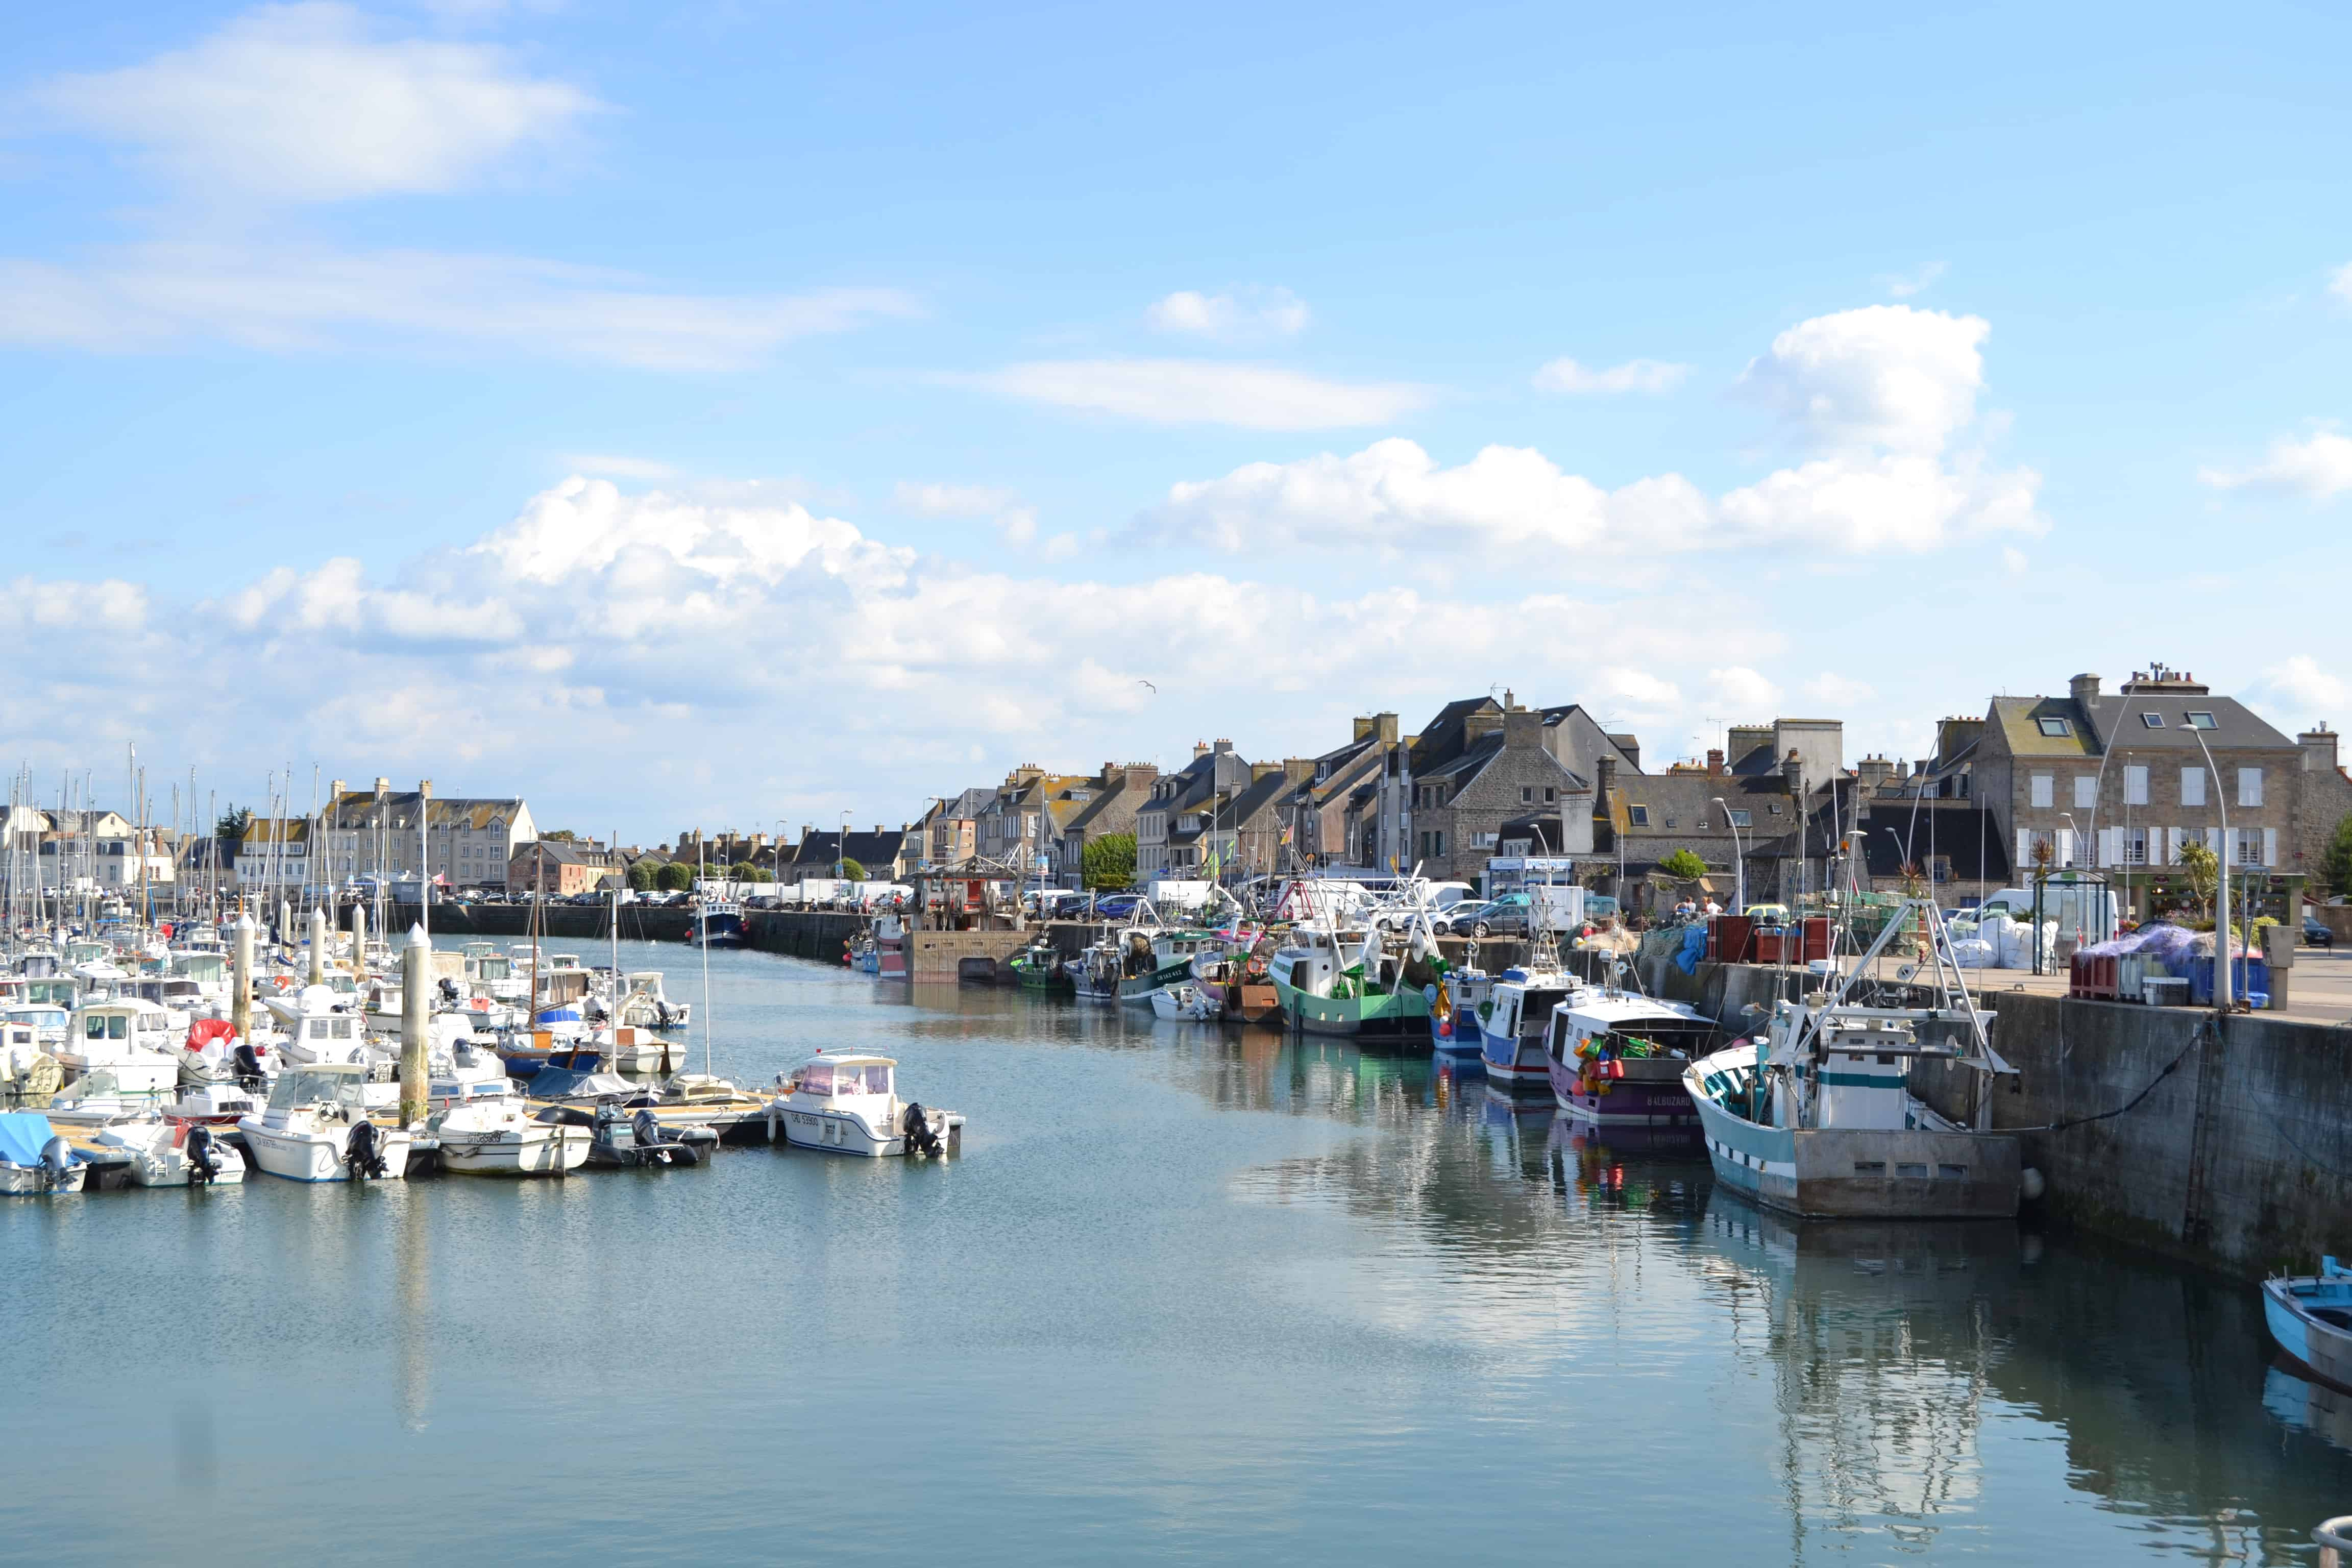 St-Vaast-La-Hougue